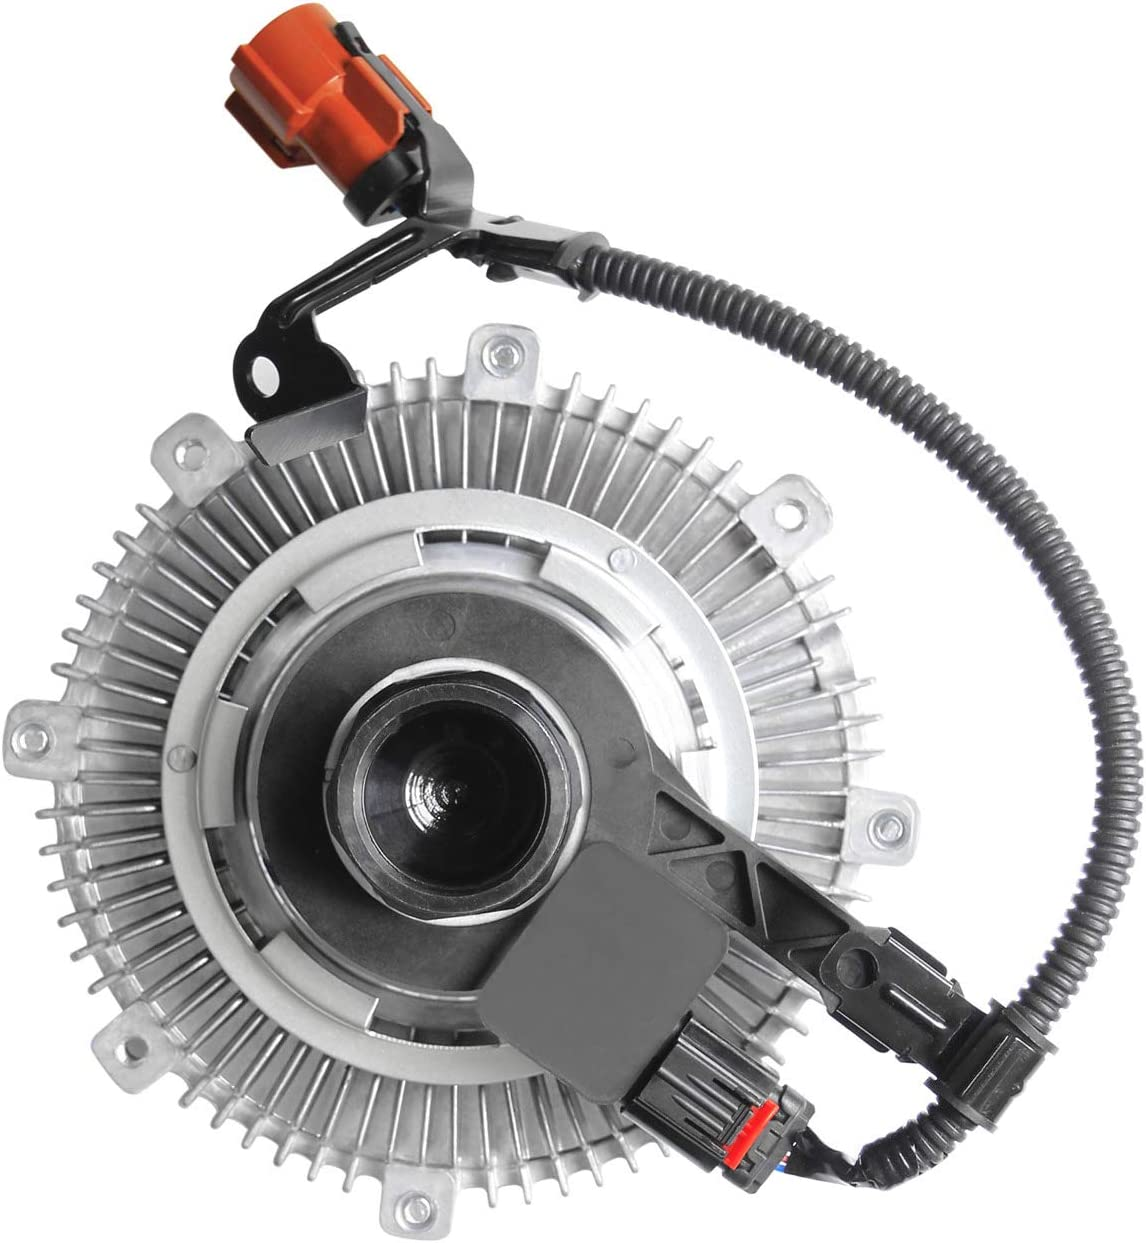 BOXI Engine Cooling Fan Clutch for 2007-2008 Ford Expedition / 07-08 Ford F-150/07-08 Lincoln Mark LT / 07-08 Lincoln Navigator (V8 4.6L 5.4L) Replaces 3264 7L1Z8A616A 7L1Z-8A616-A